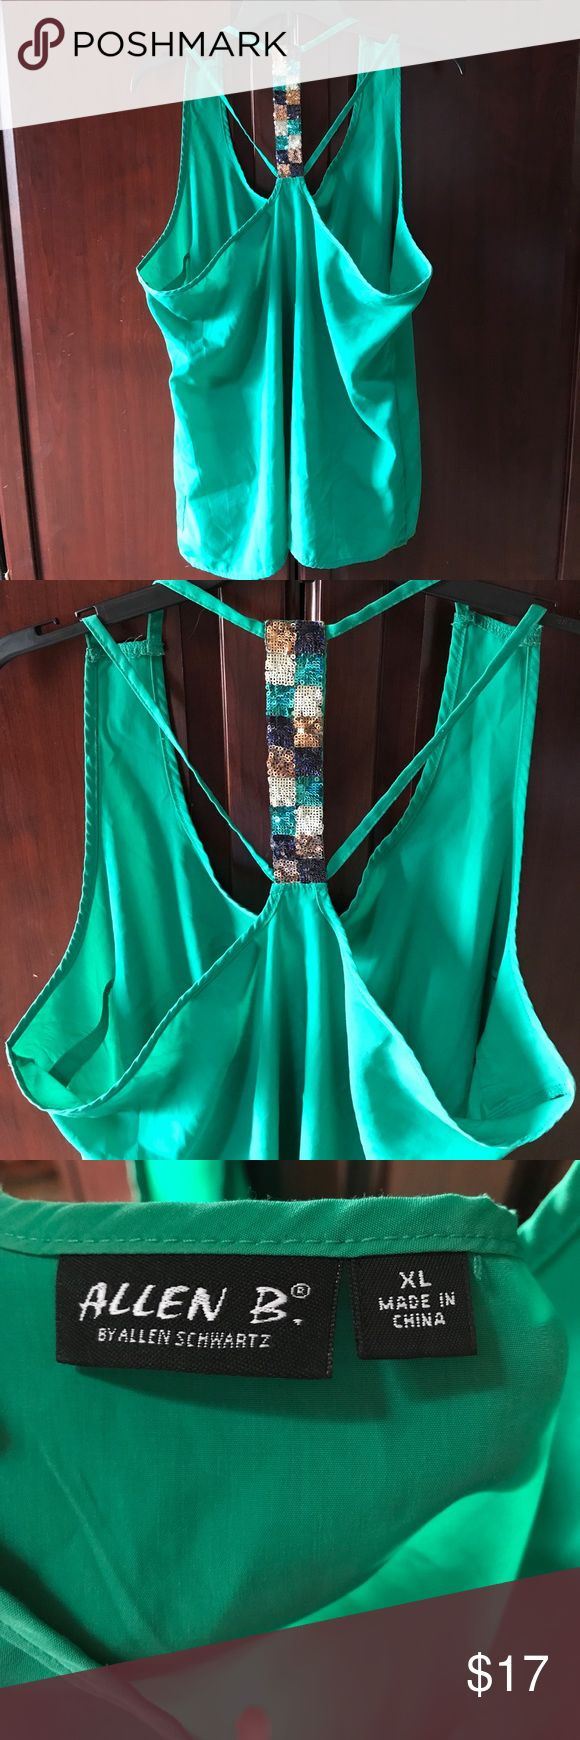 Green Tank Top w/ Sequence back 😍 Beautiful green tank top with sequence back! Size XL. Material is silky and fits perfect on curves! Worn a few times. ❌ NO TRADES. ABS Allen Schwartz Tops Tank Tops